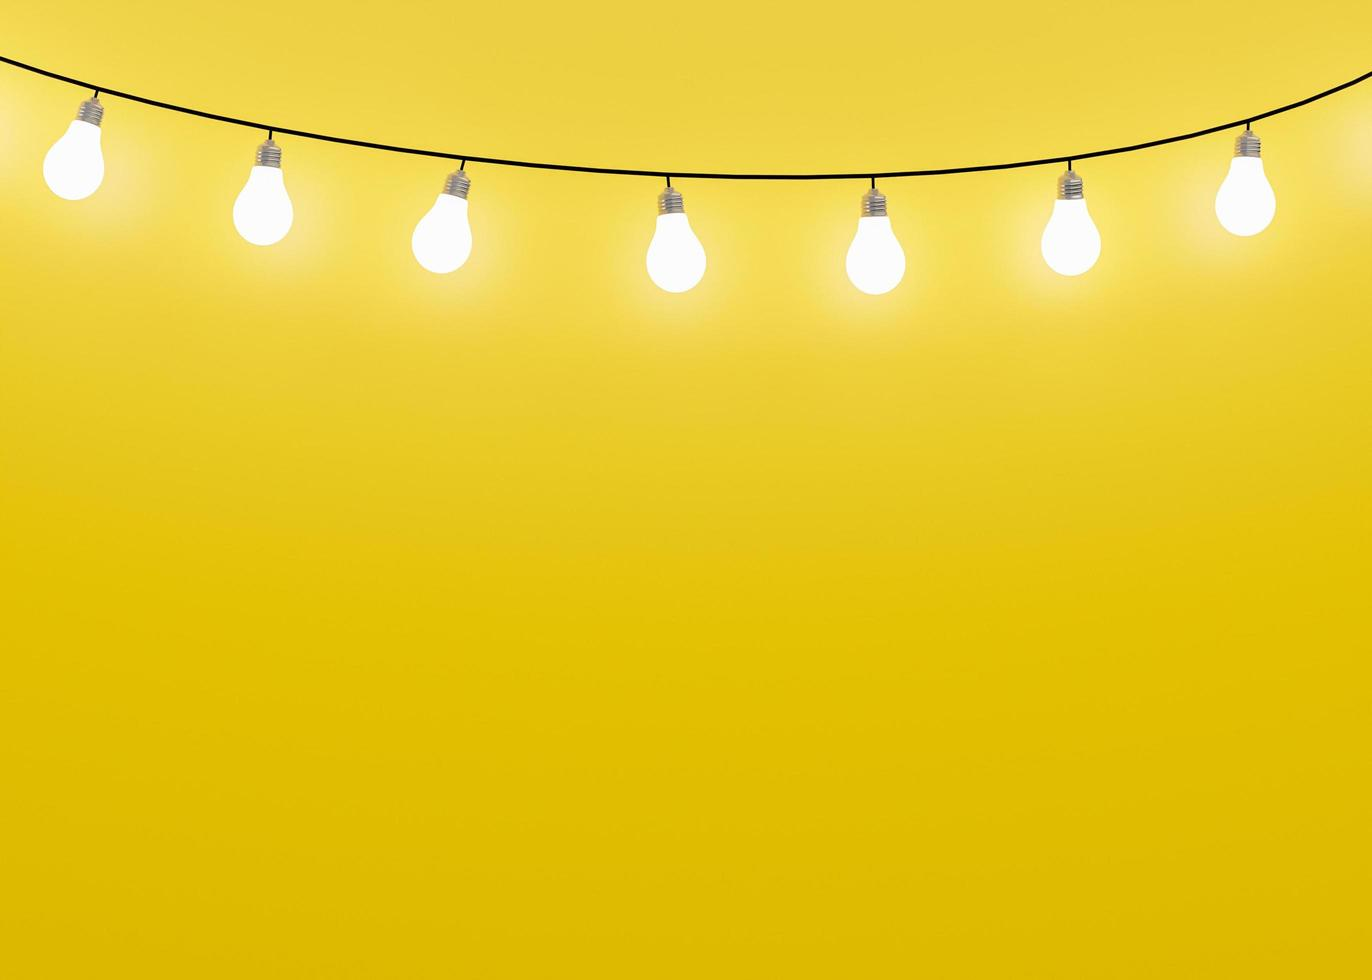 Yellow background with many light bulbs photo